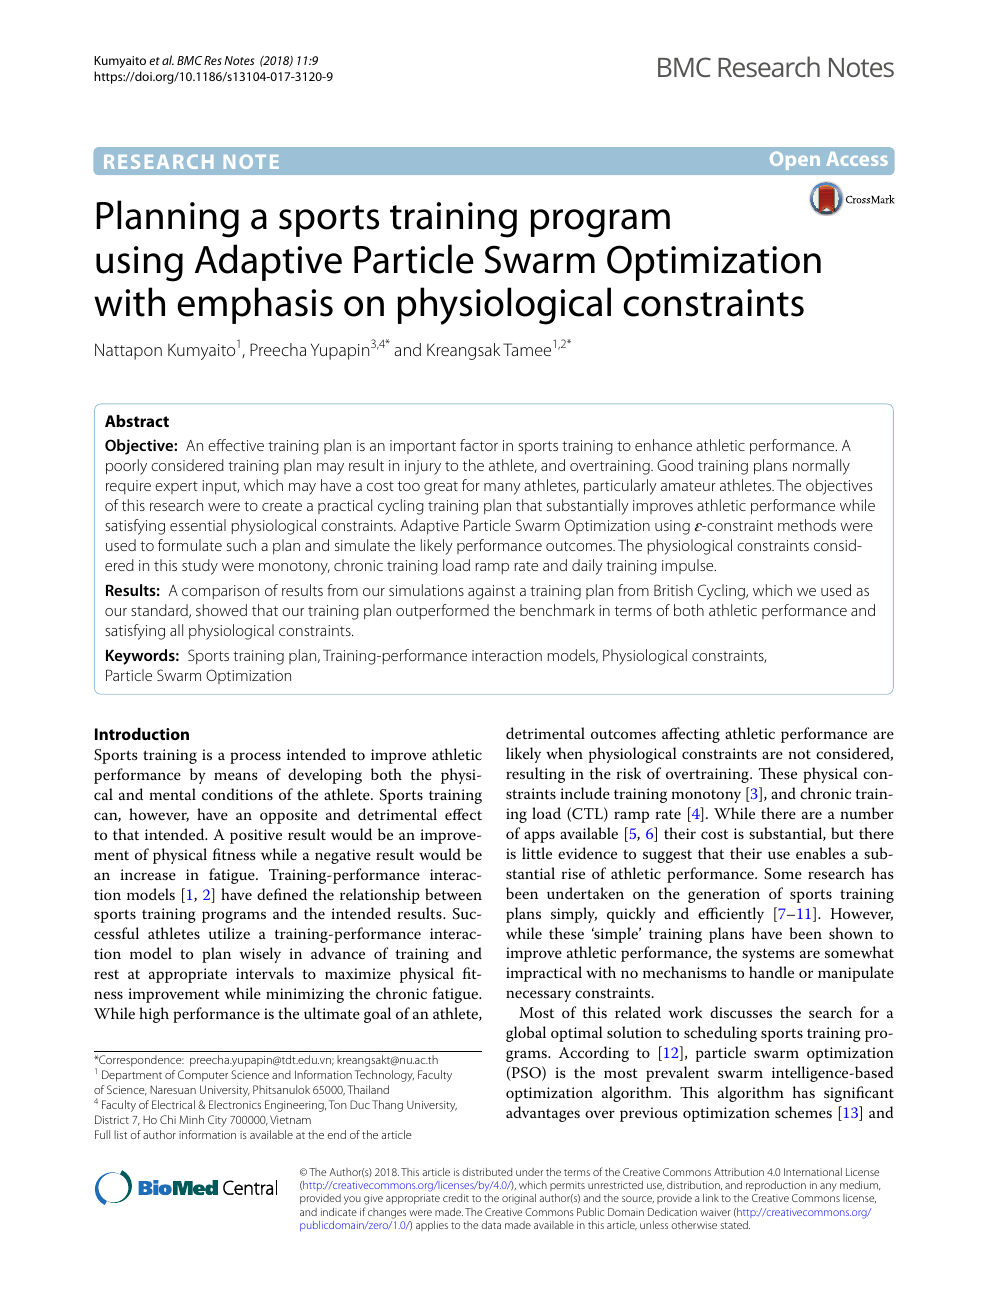 Planning A Sports Training Program Using Adaptive Particle Swarm